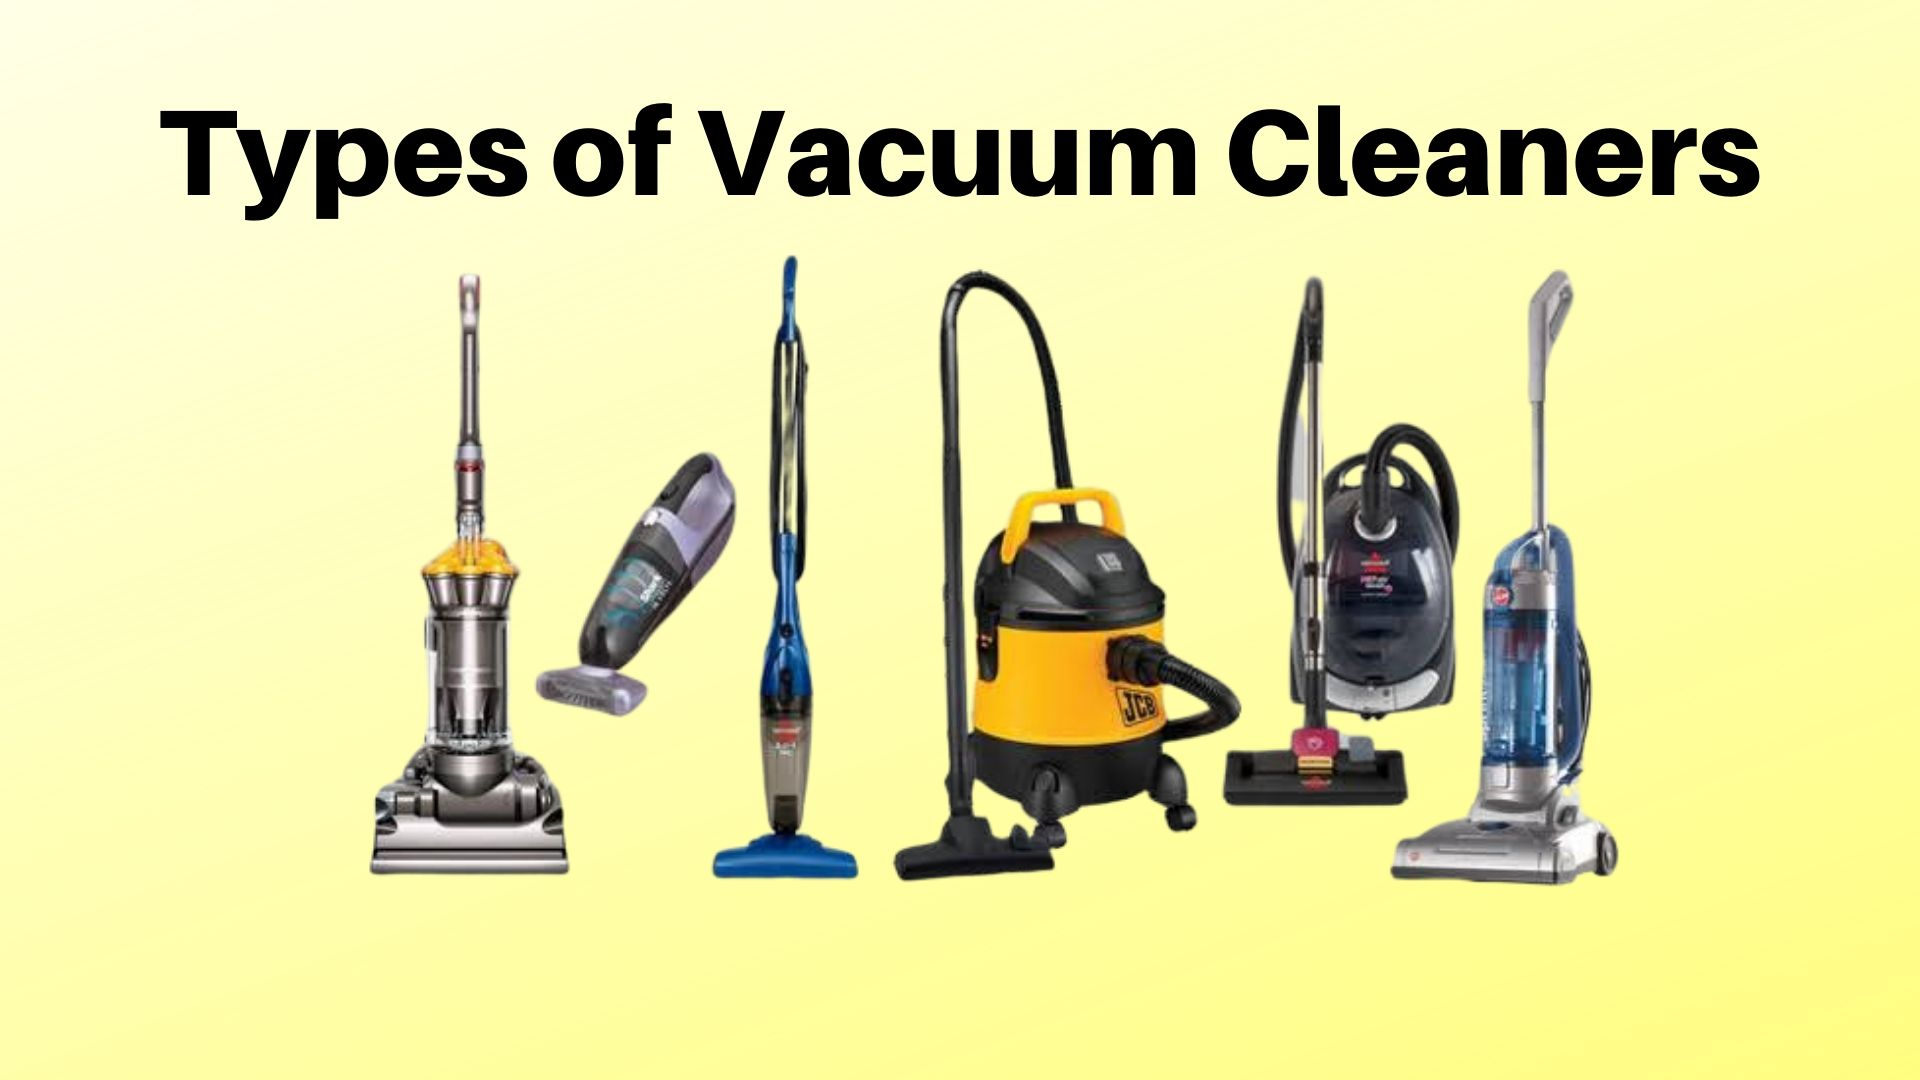 7 Types Of Vacuum Cleaners Which One Is Best For You